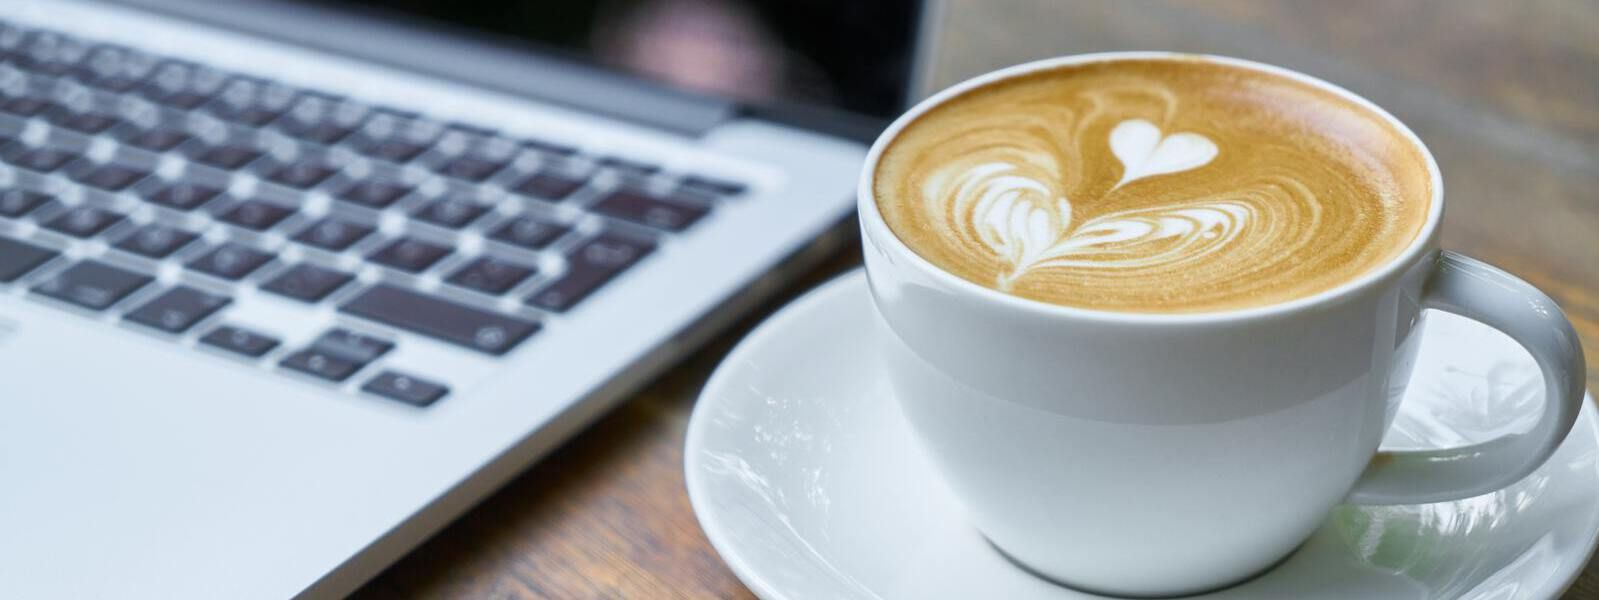 Writing a blog post with coffee and computer